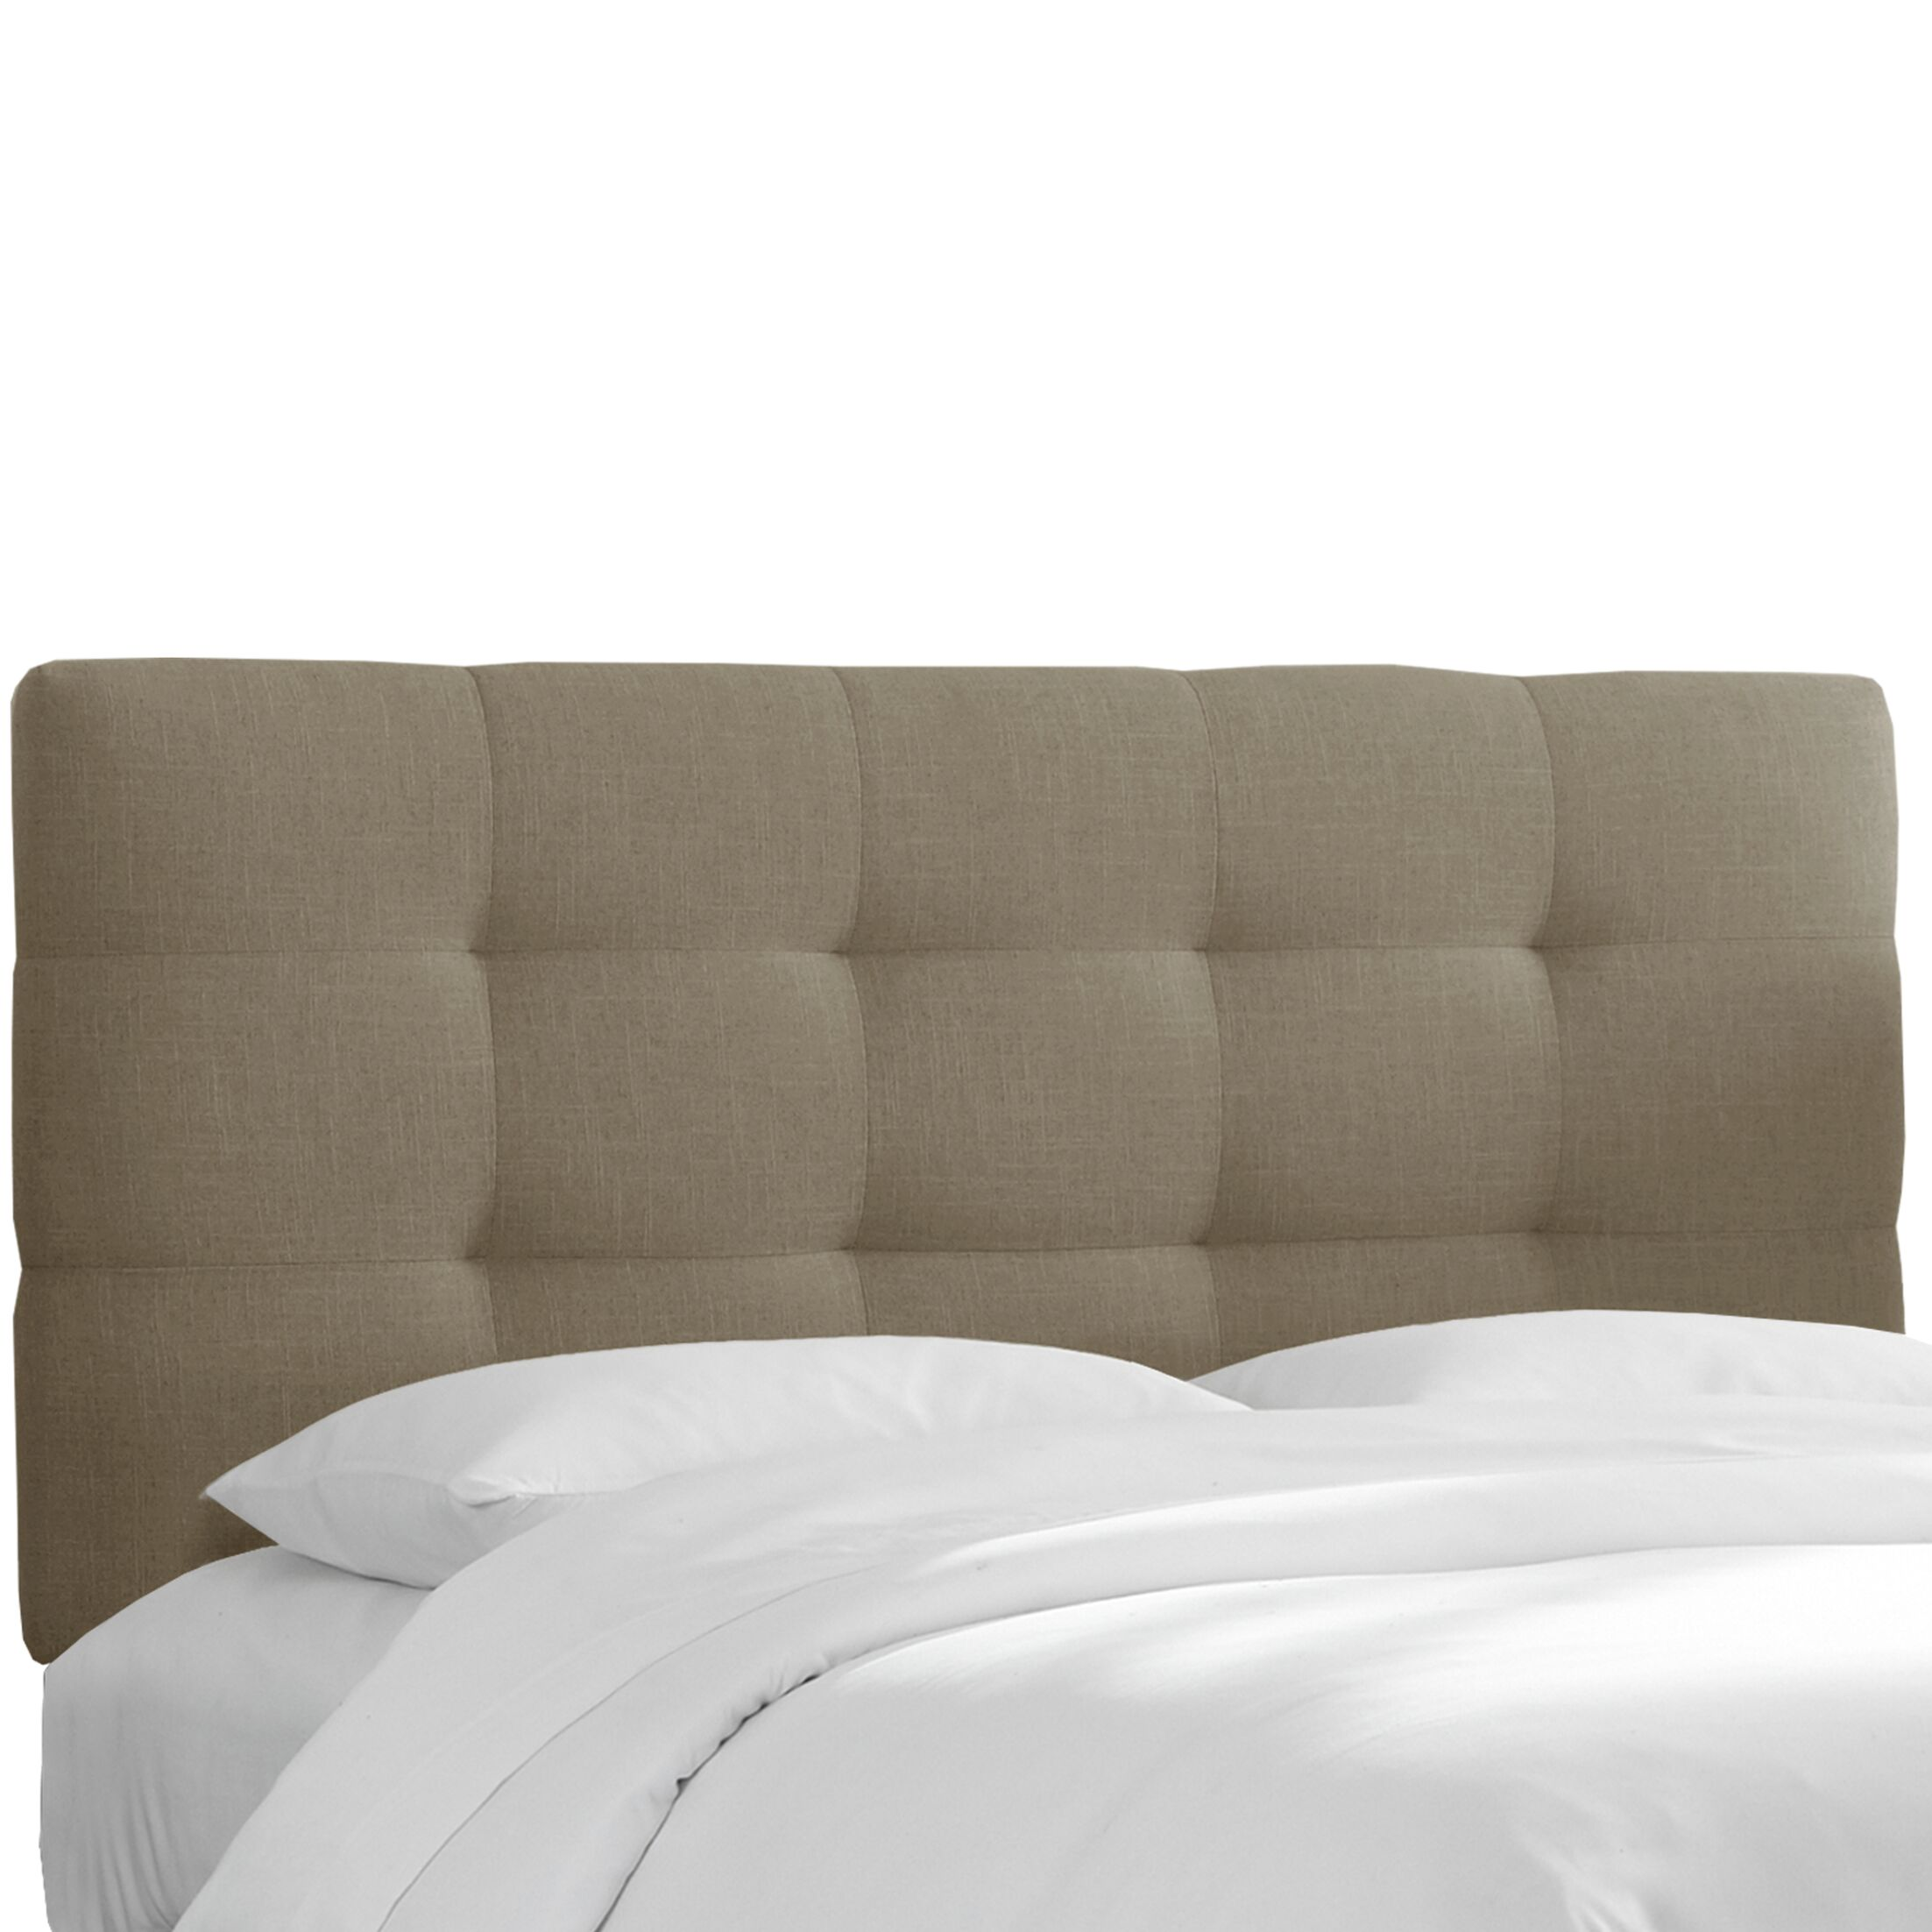 Claudia Upholstered Headboard in Linen Gray Size: California King